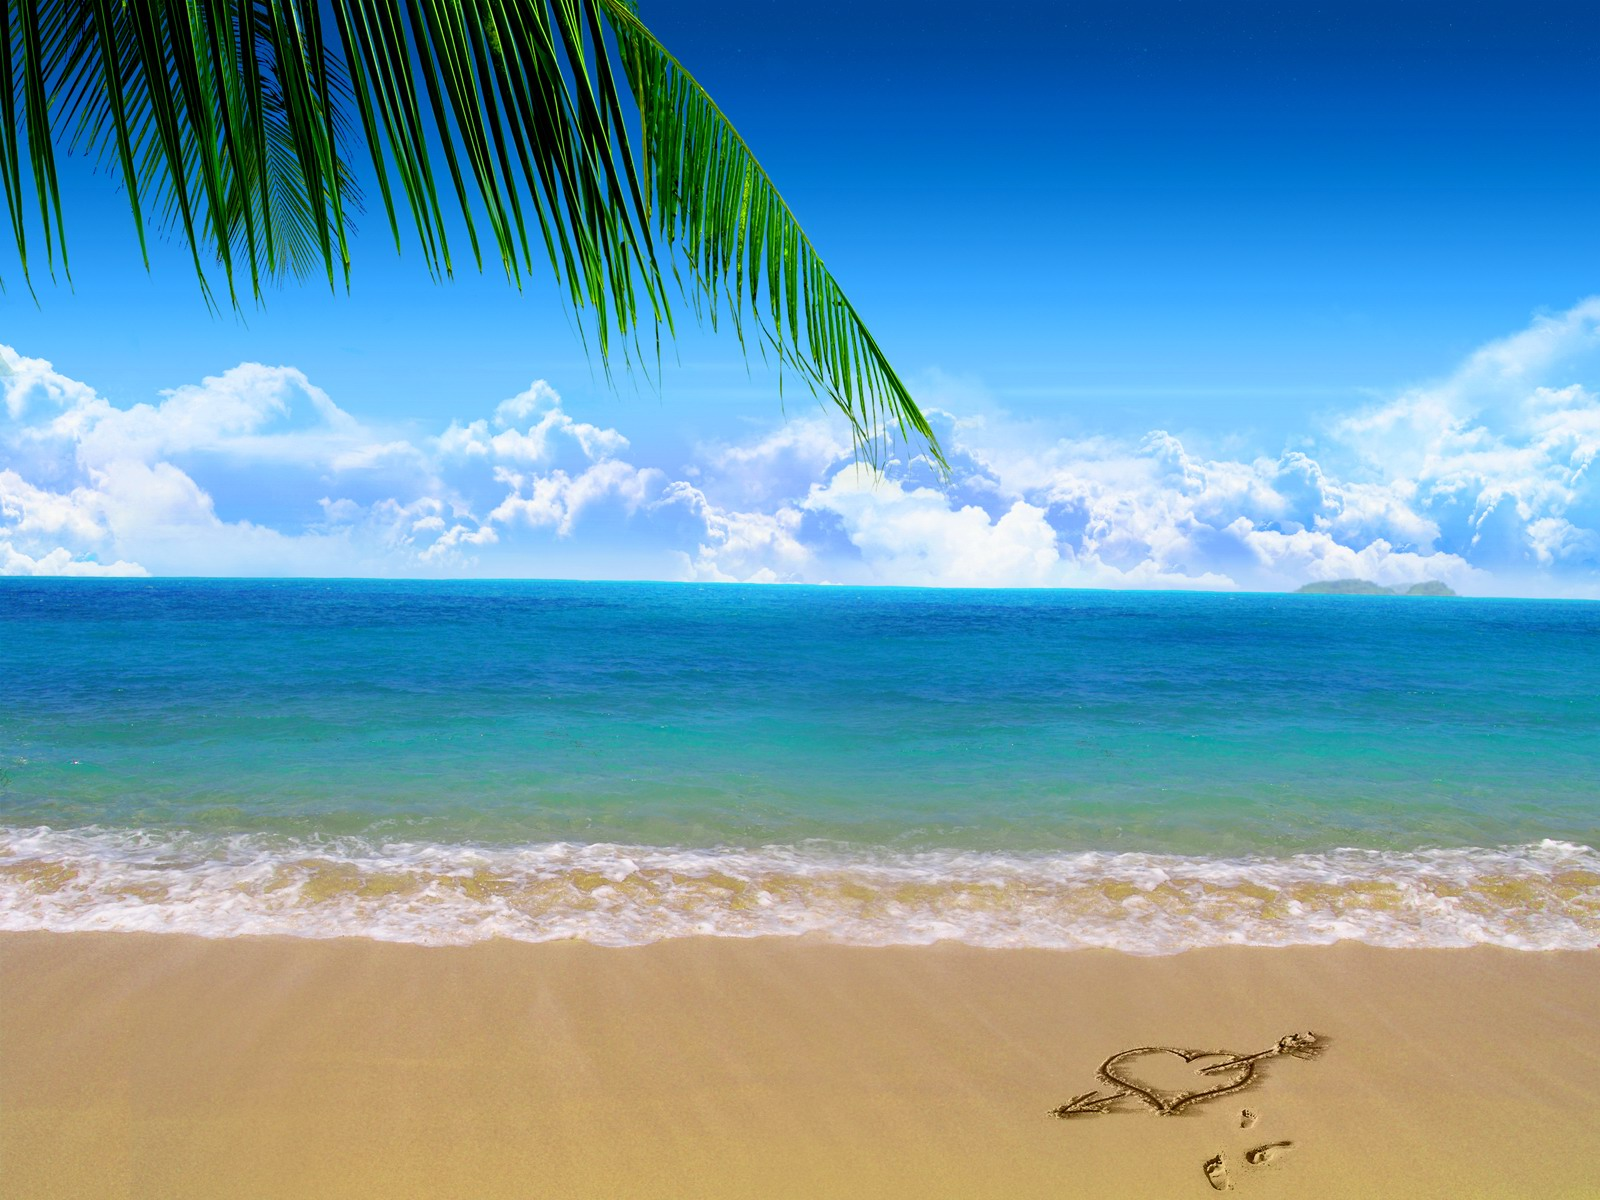 Beach desktop wallpaper 0011   desktop wallpaper downloads 1600x1200